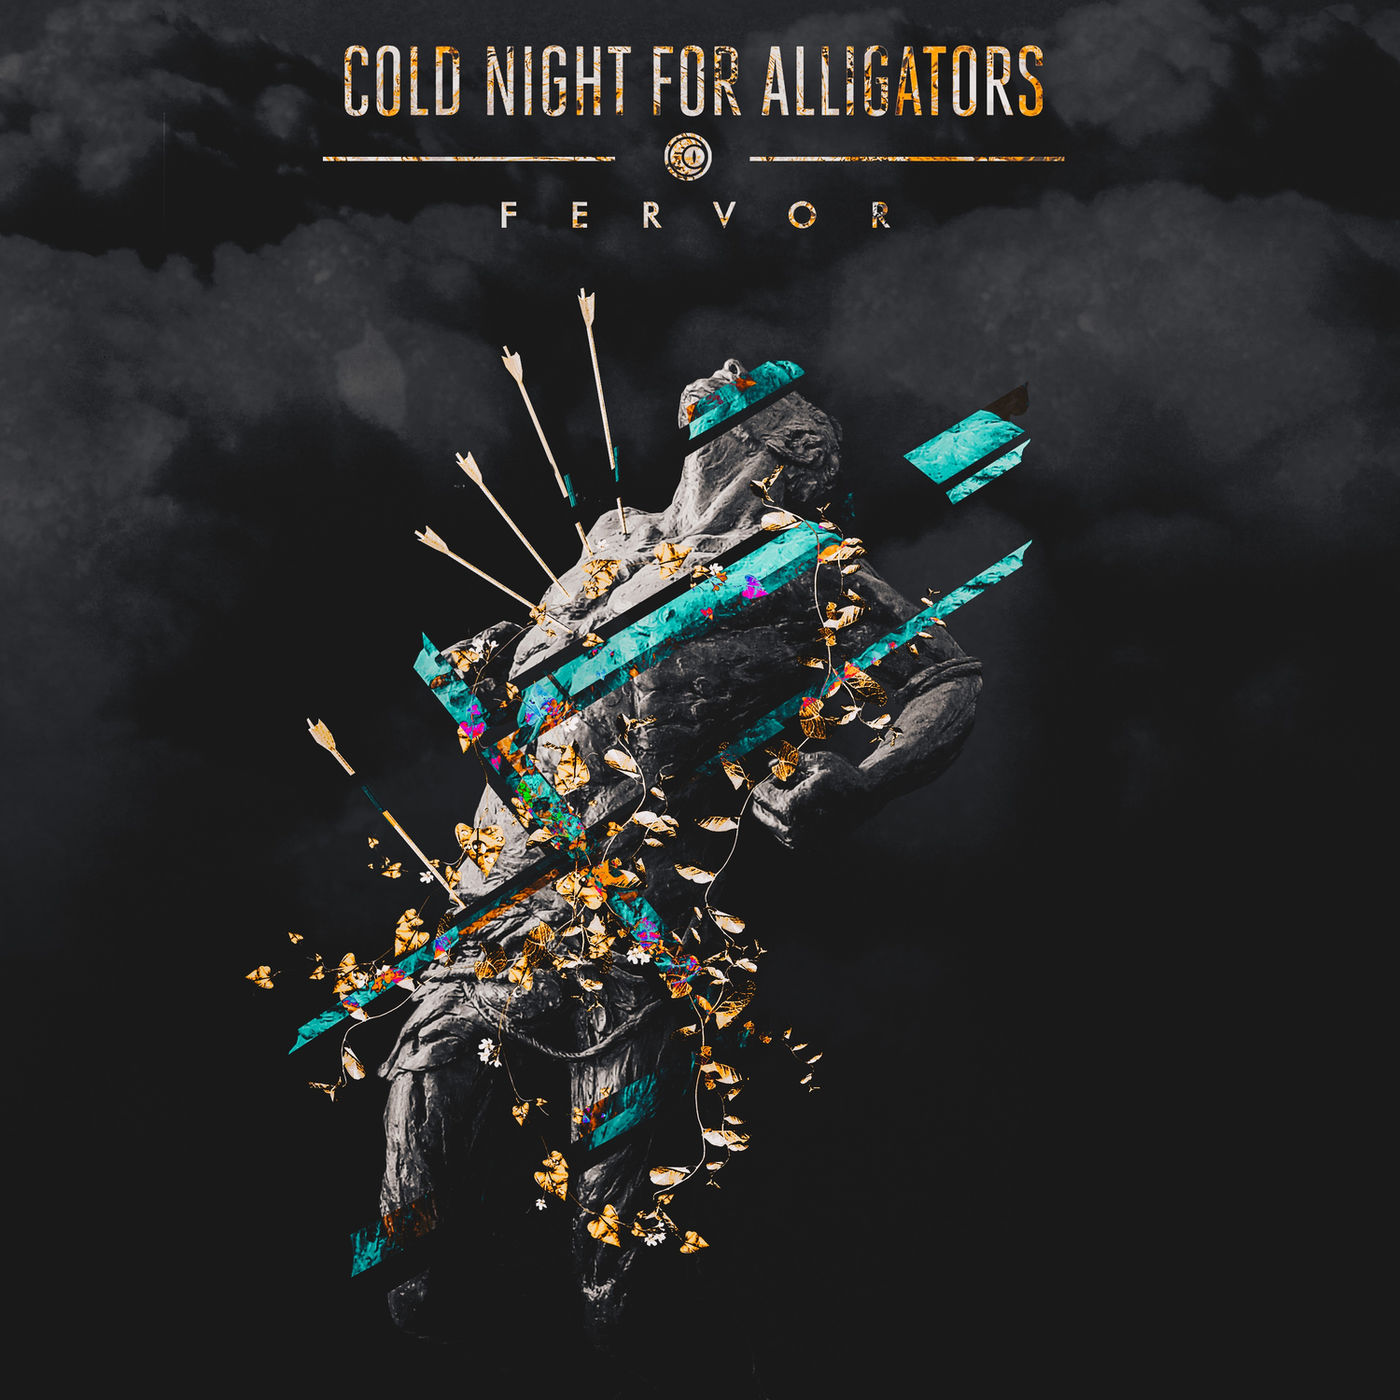 Cold Night for Alligators - Fervor (2018)